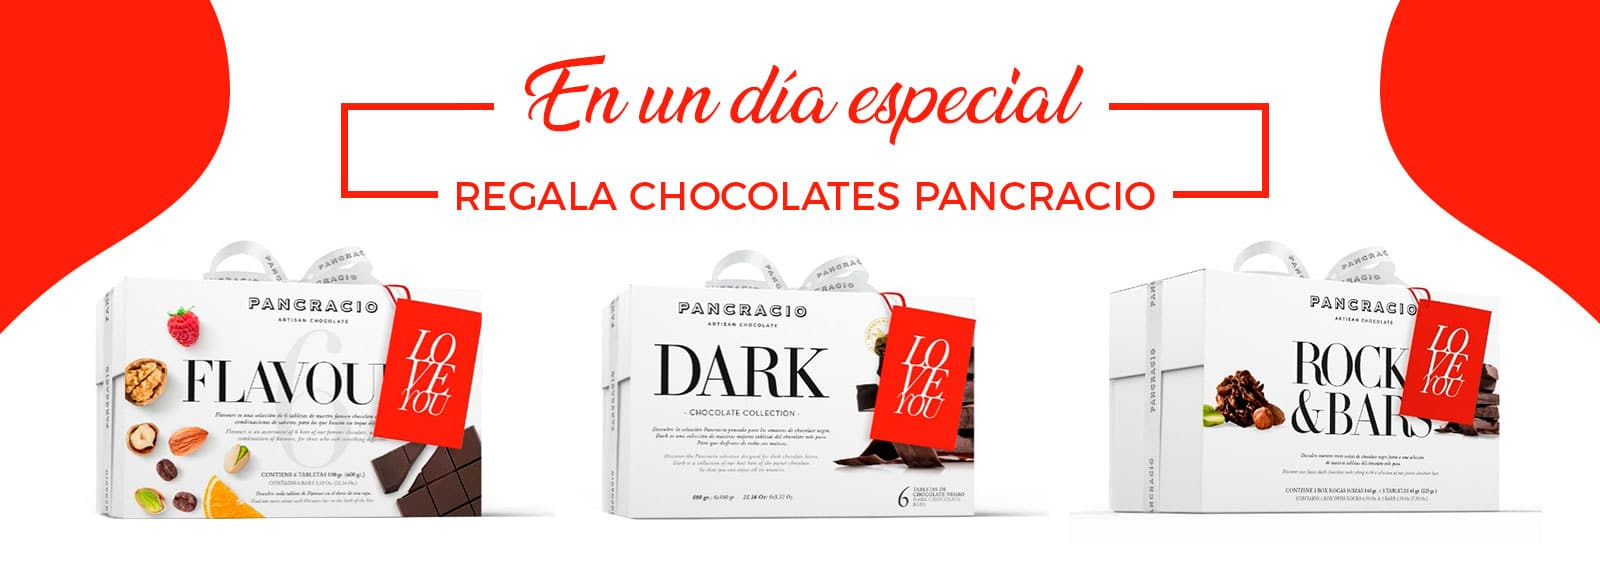 Regala chocolate pancracio